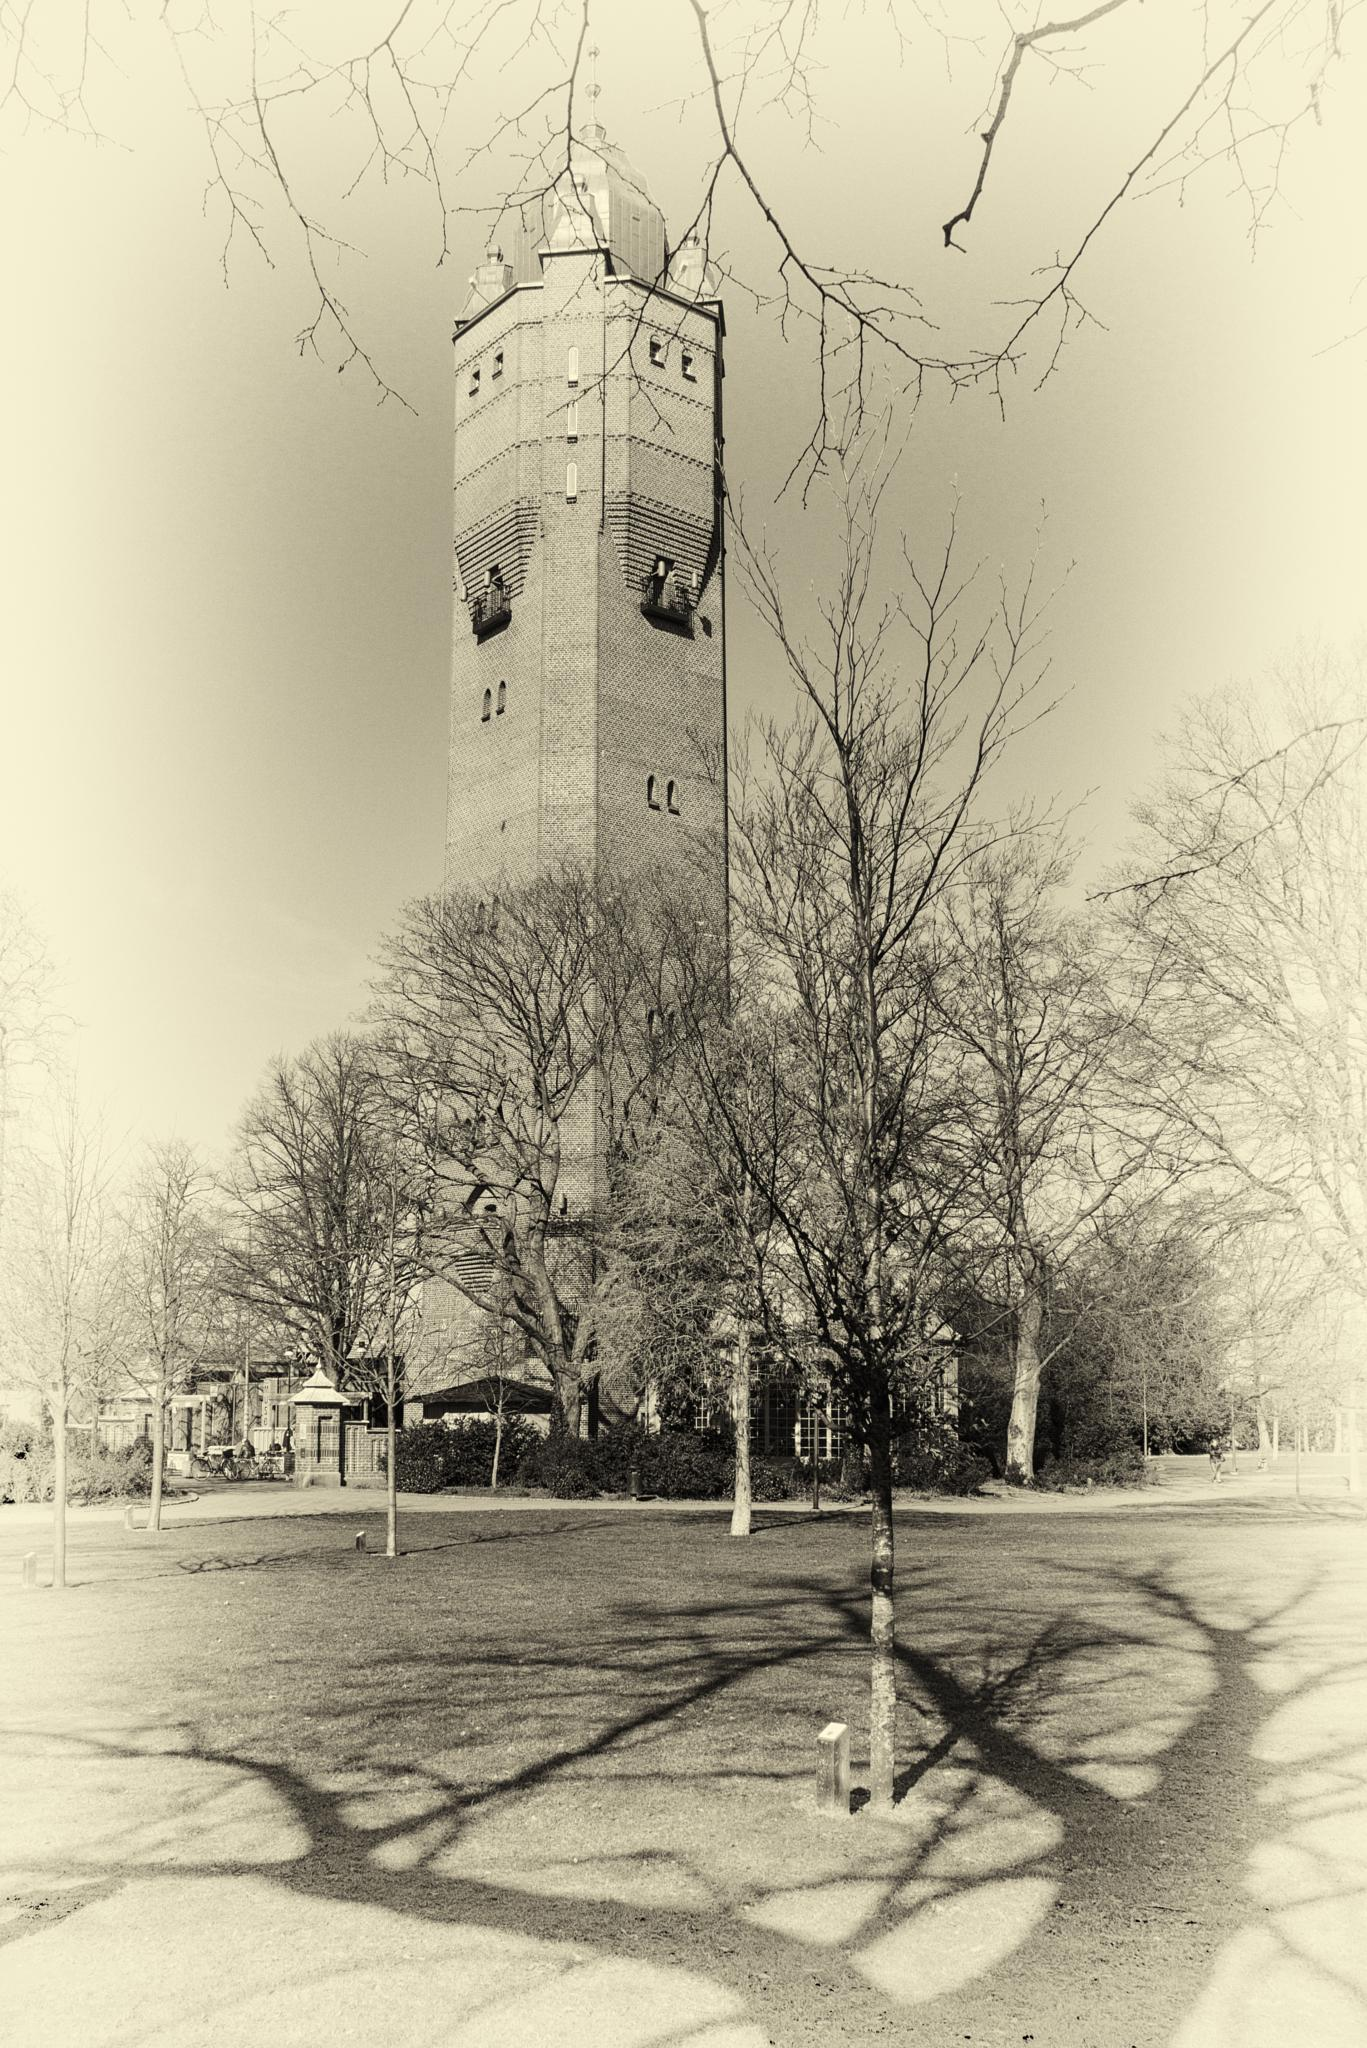 Old Water Tower by Leif Heering